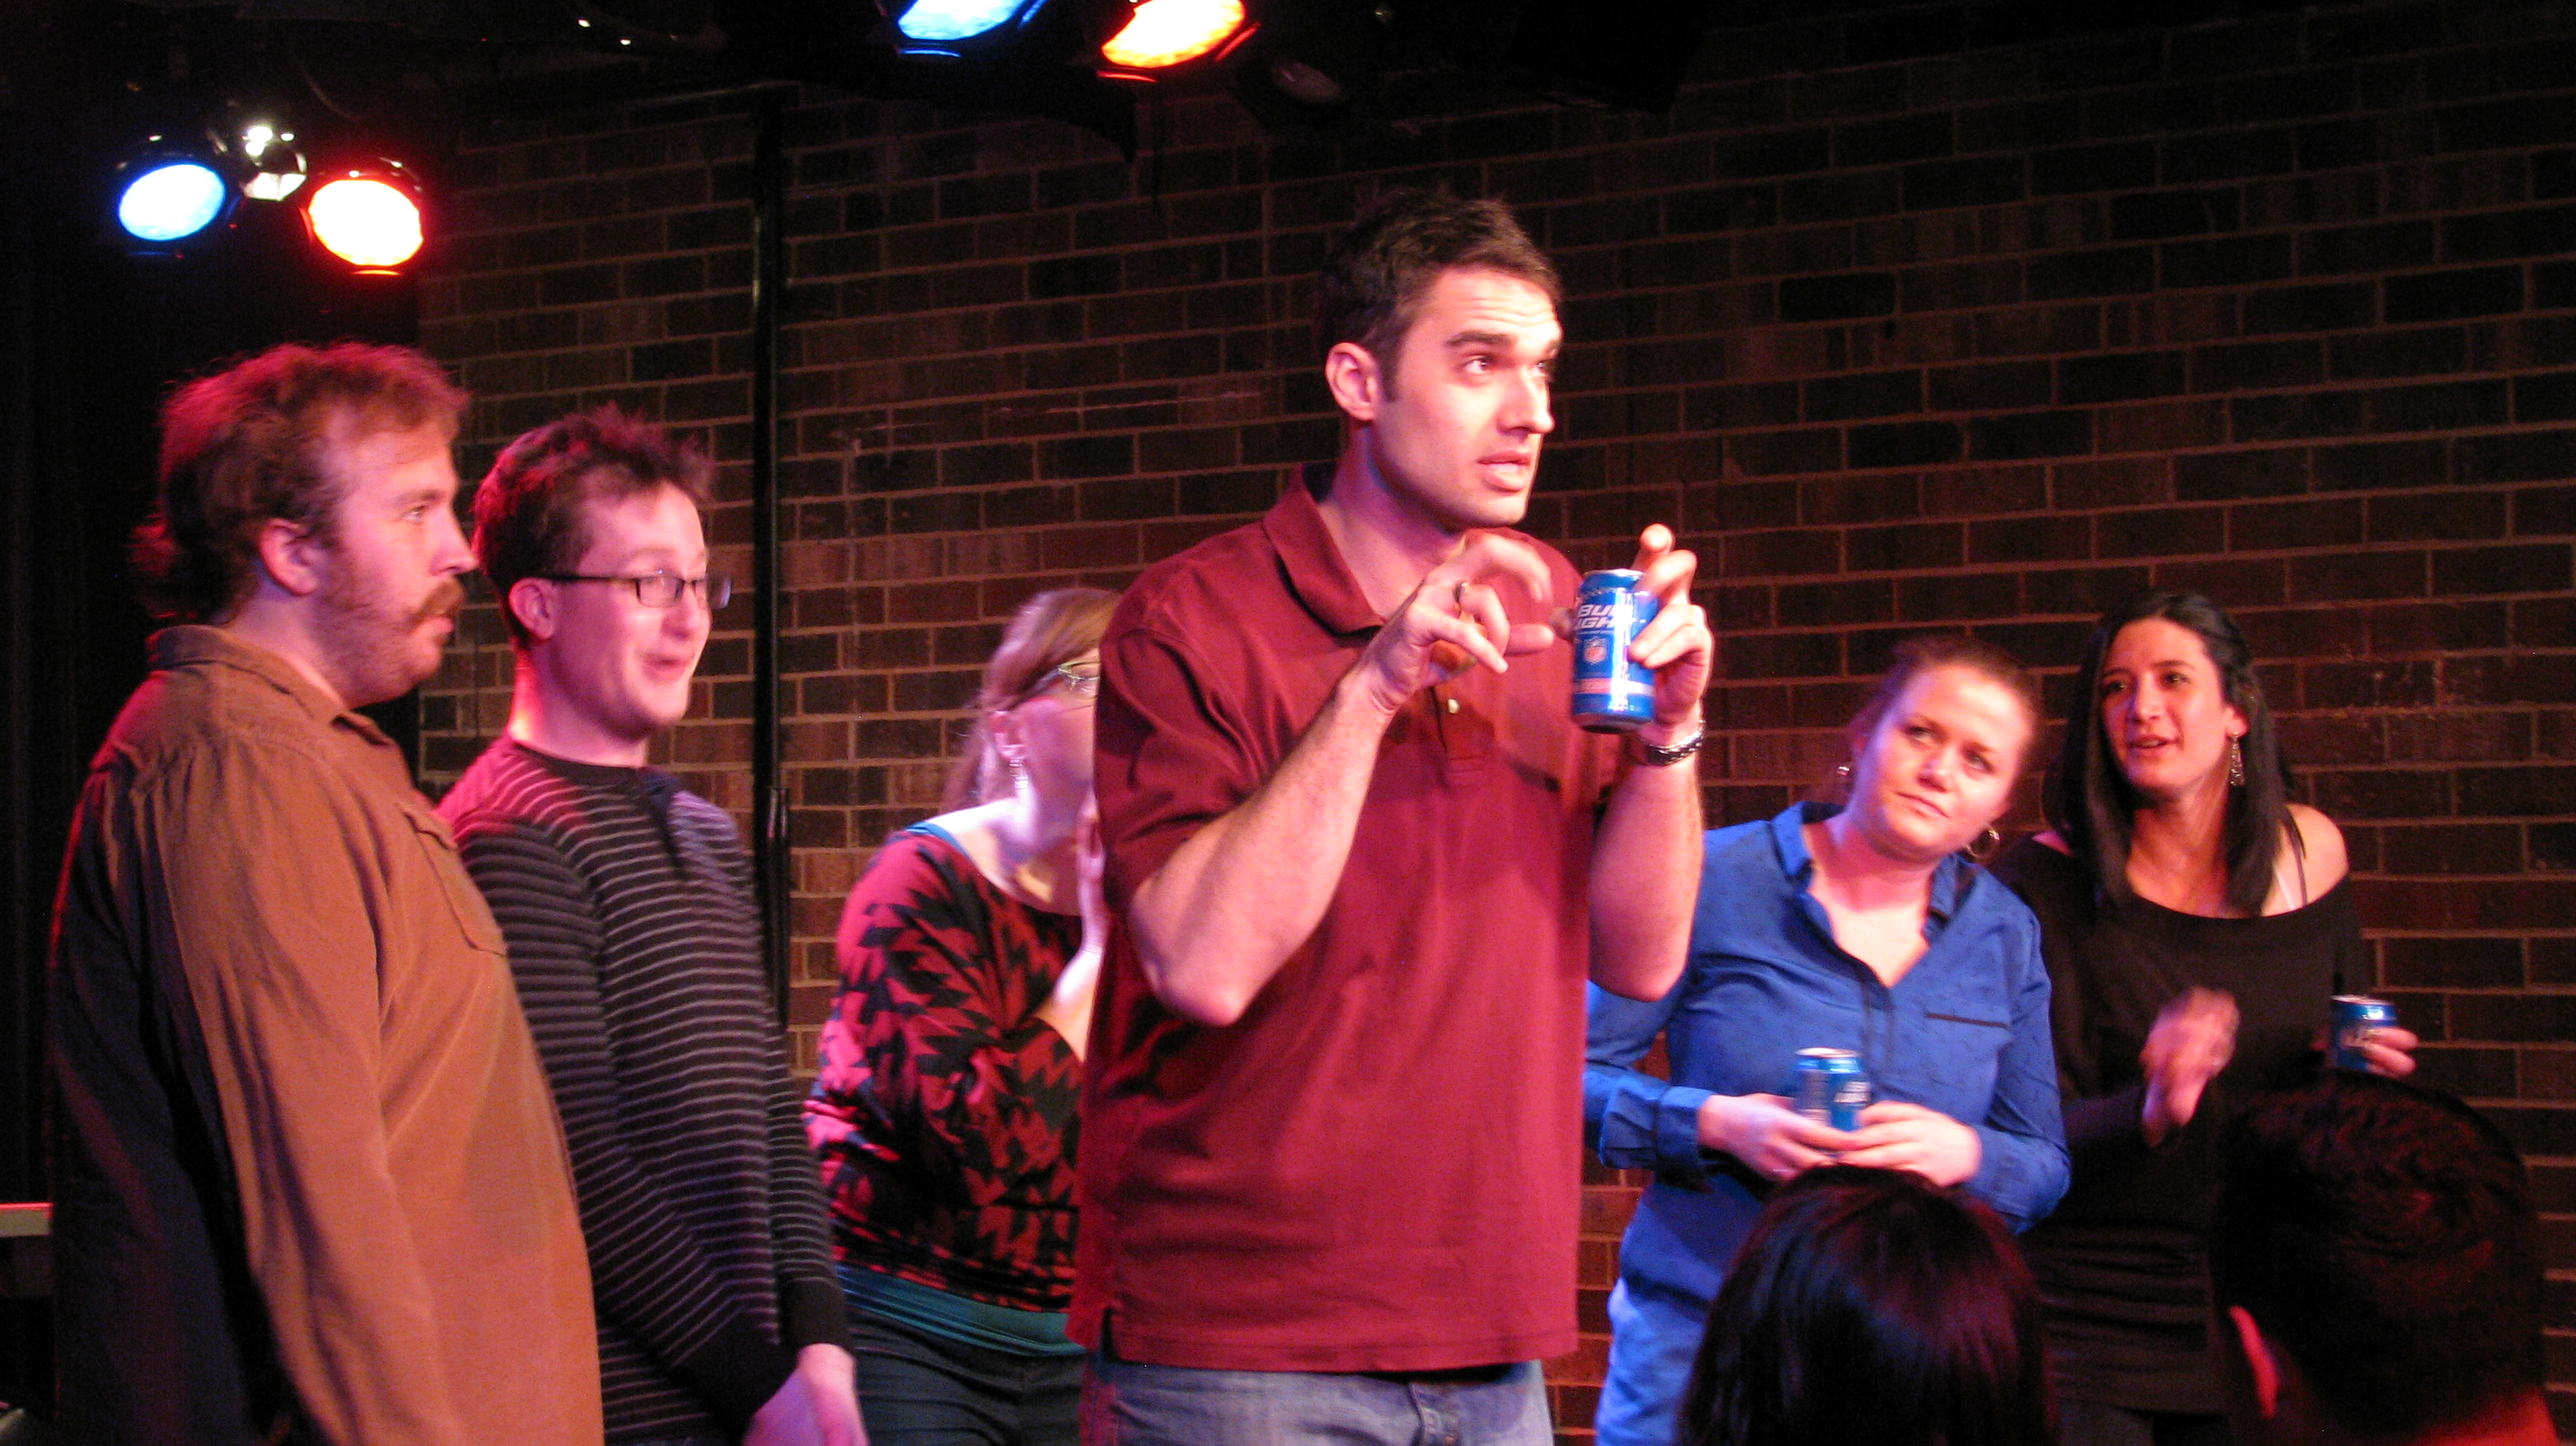 """""""THIRSTY"""" RETURNS FOR A STAGGERING SEVENTH SEASON 7 Thirsty: Chicago's Premier Improv Drinking Party makes its triumphant return for its staggering SEVENTH season at the Apollo Studio Theater this weekend, Friday and Saturday night, Sept. 12-13."""